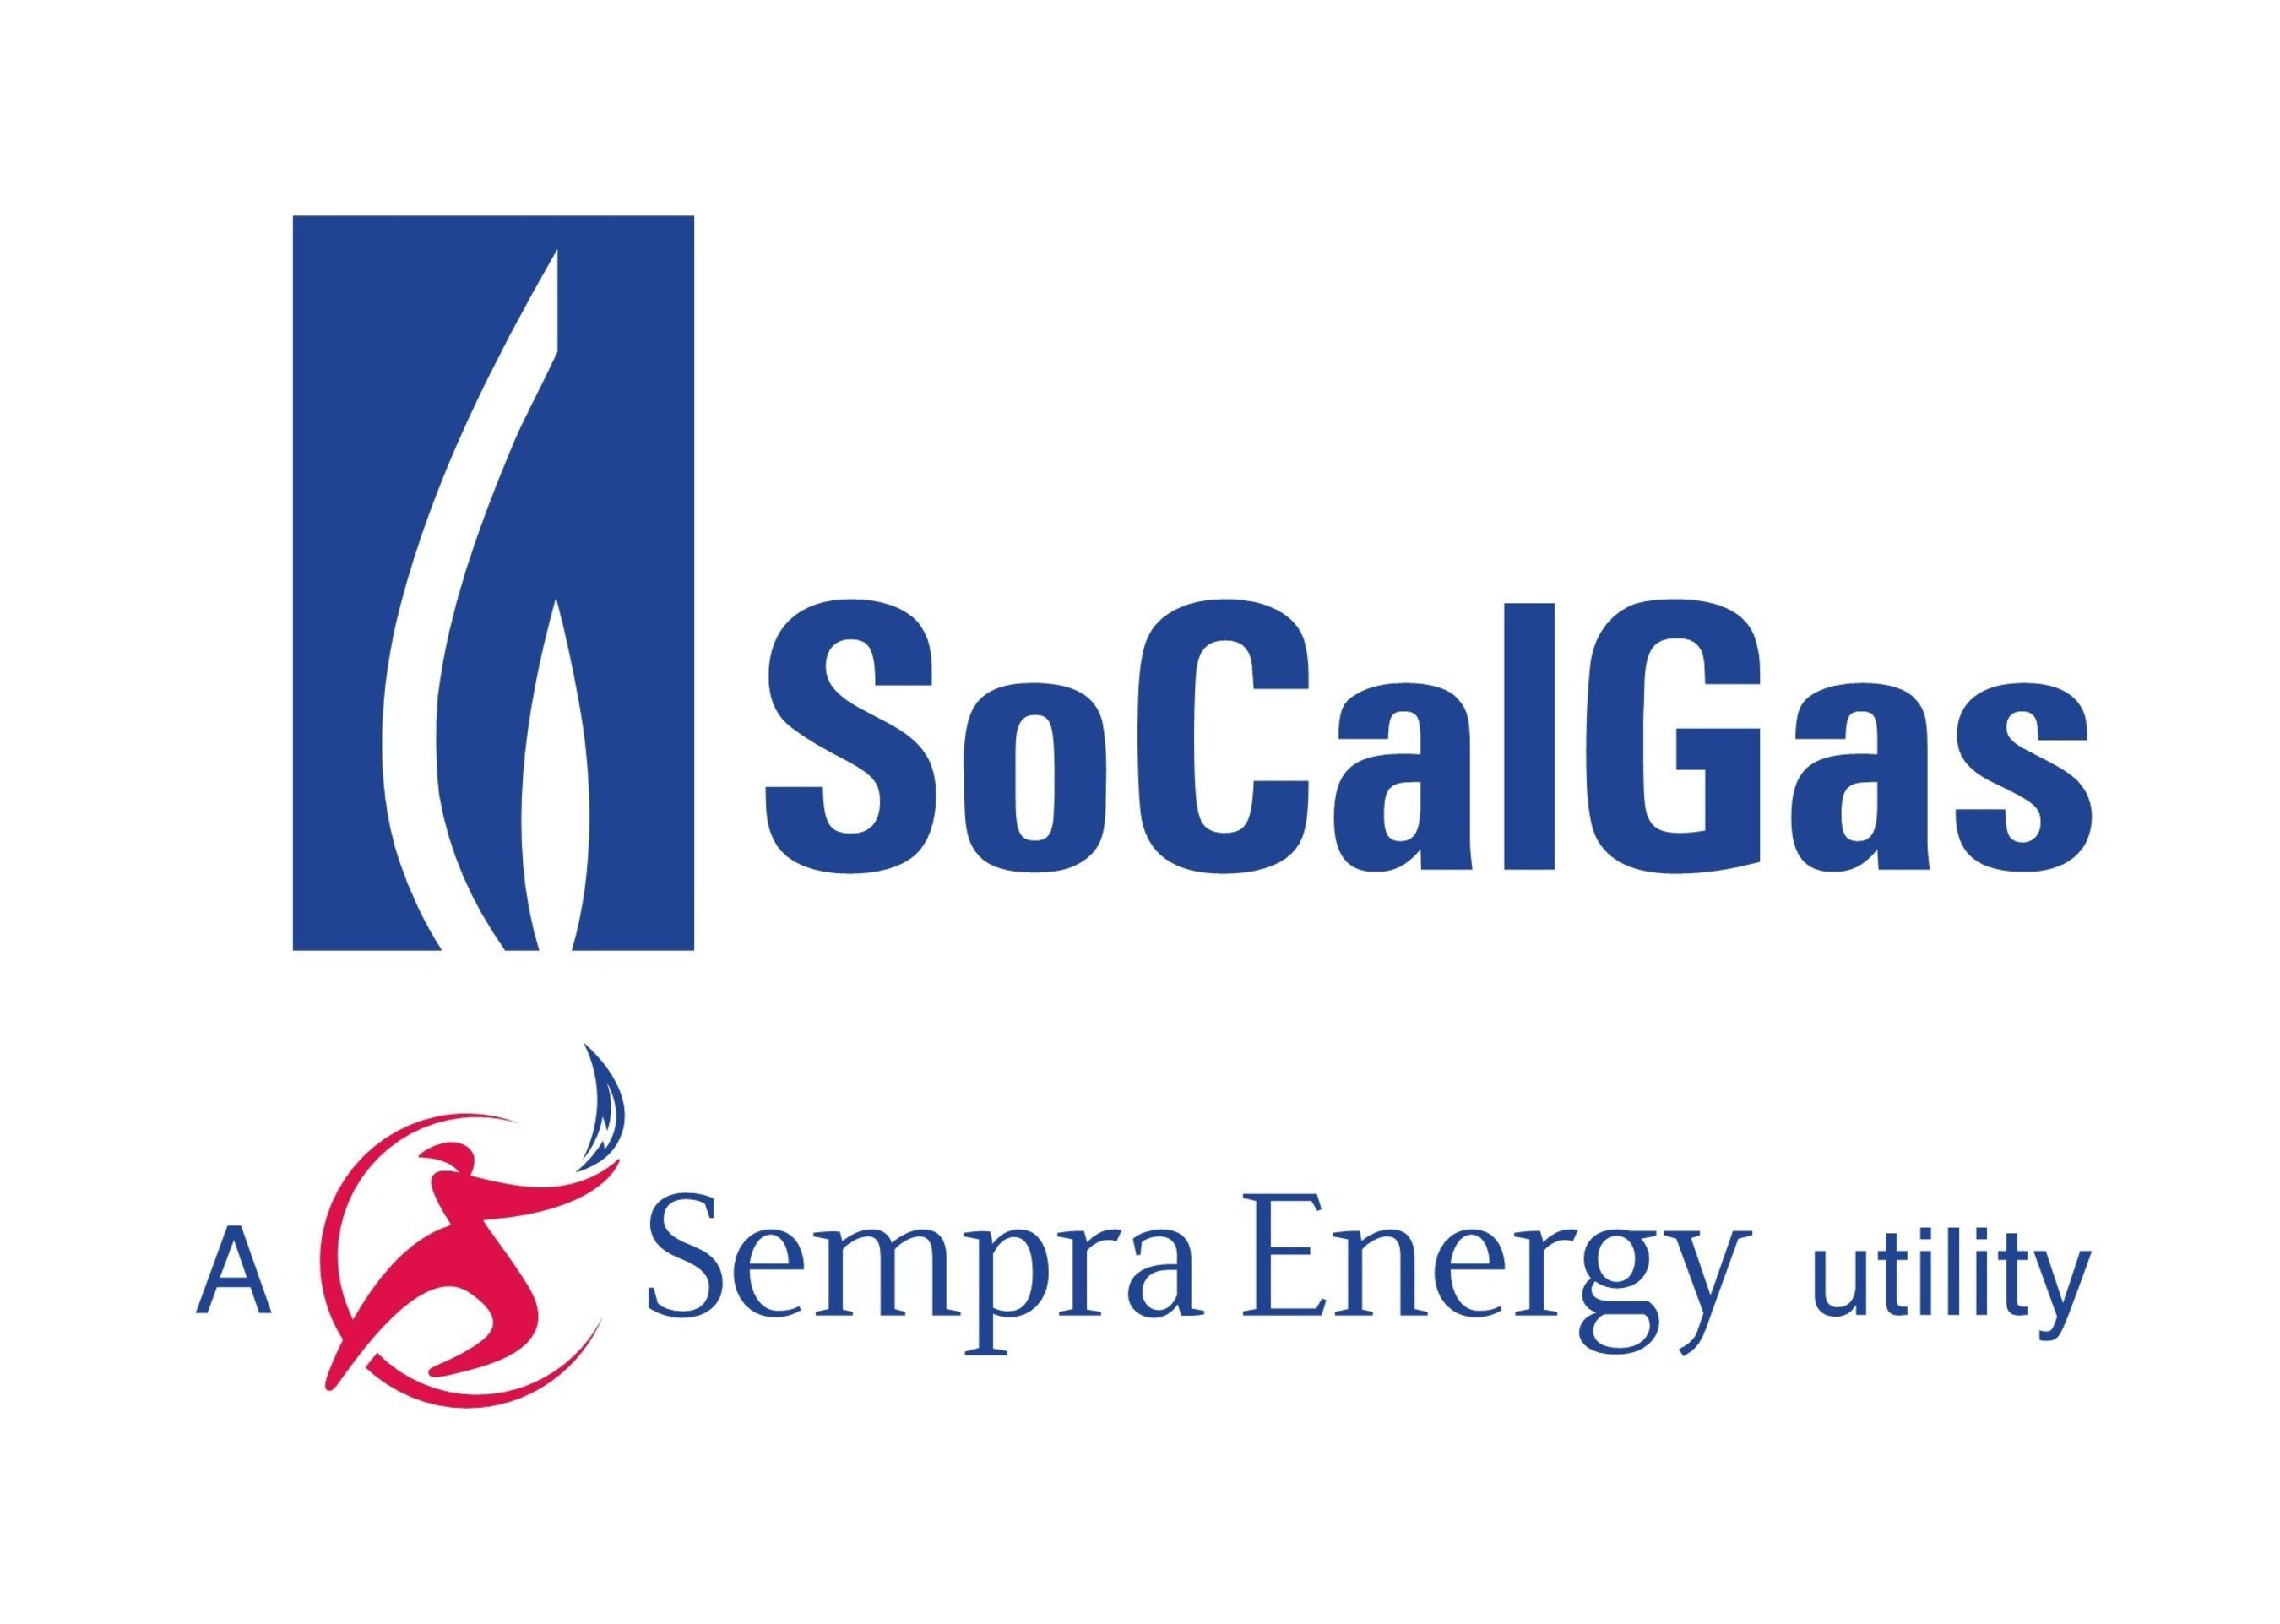 Southern California Gas Co. is the nation's largest natural gas distribution utility, providing safe and reliable energy to 20.9 million consumers through nearly 5.8 million meters in more than 500 communities. The company's service territory encompasses approximately 20,000 square miles throughout Central and Southern California, from Visalia to the Mexican border. Southern California Gas Co. is a regulated subsidiary of Sempra Energy